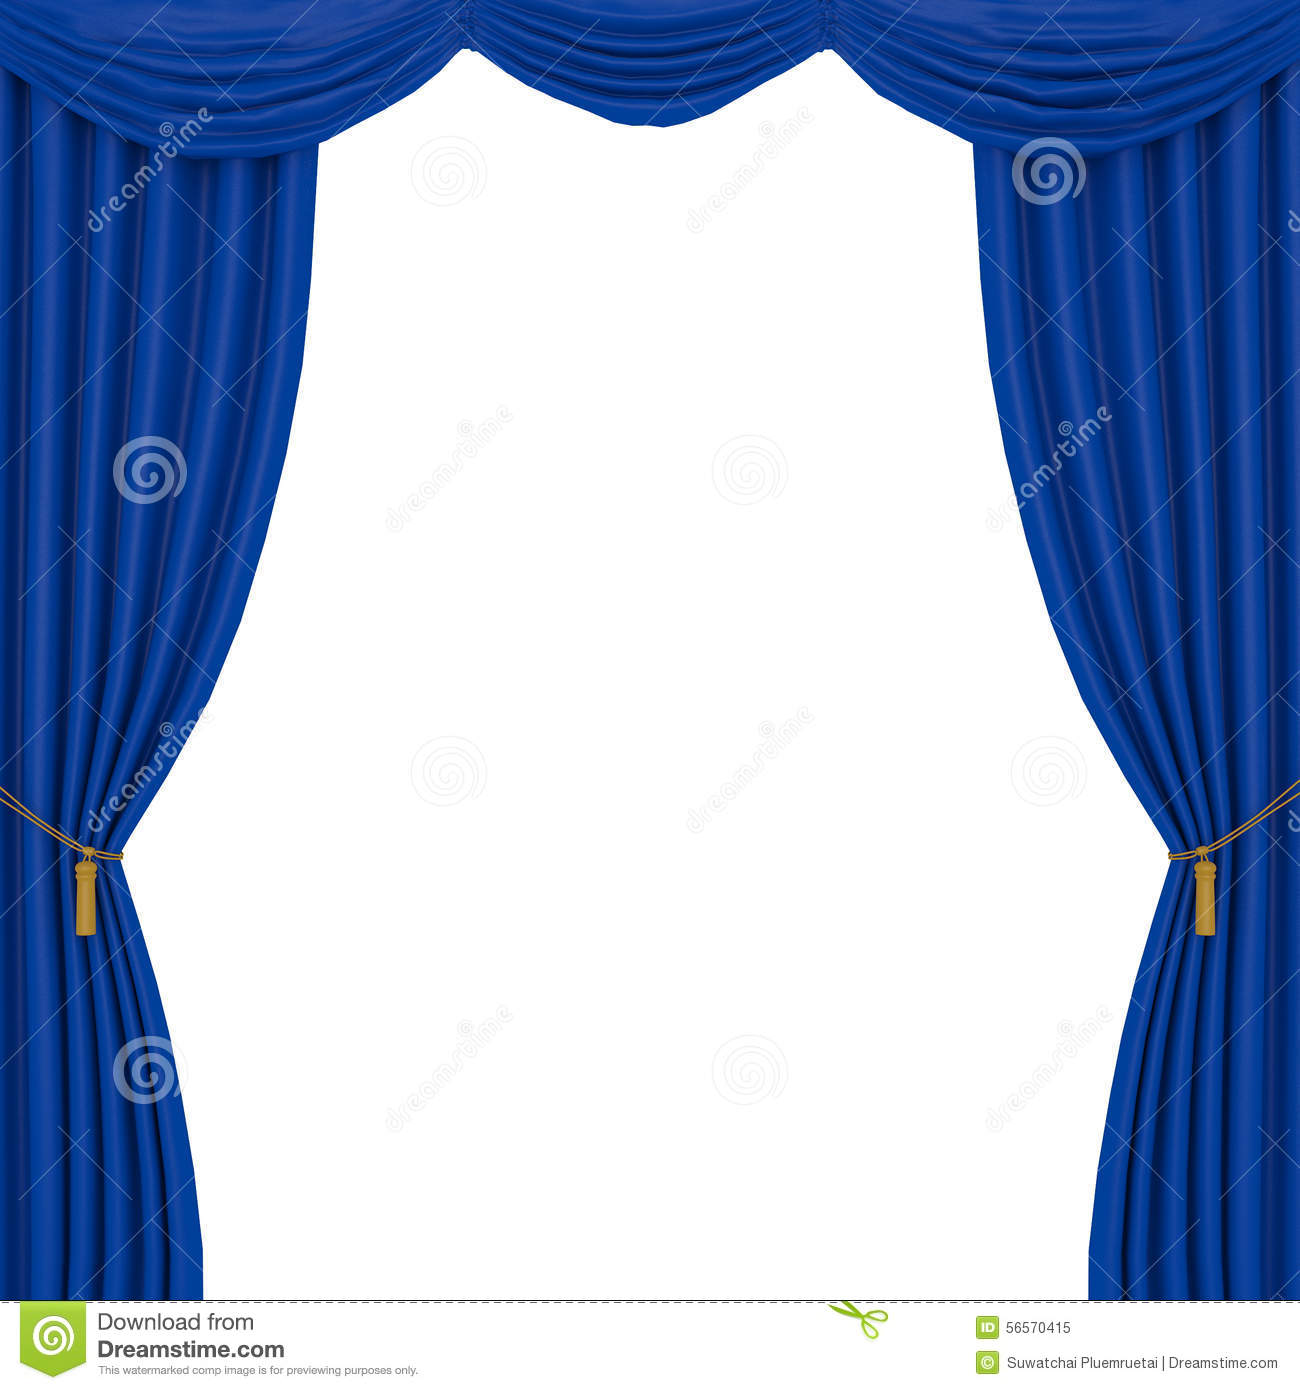 Blue curtain backdrop - Blue Curtains Background